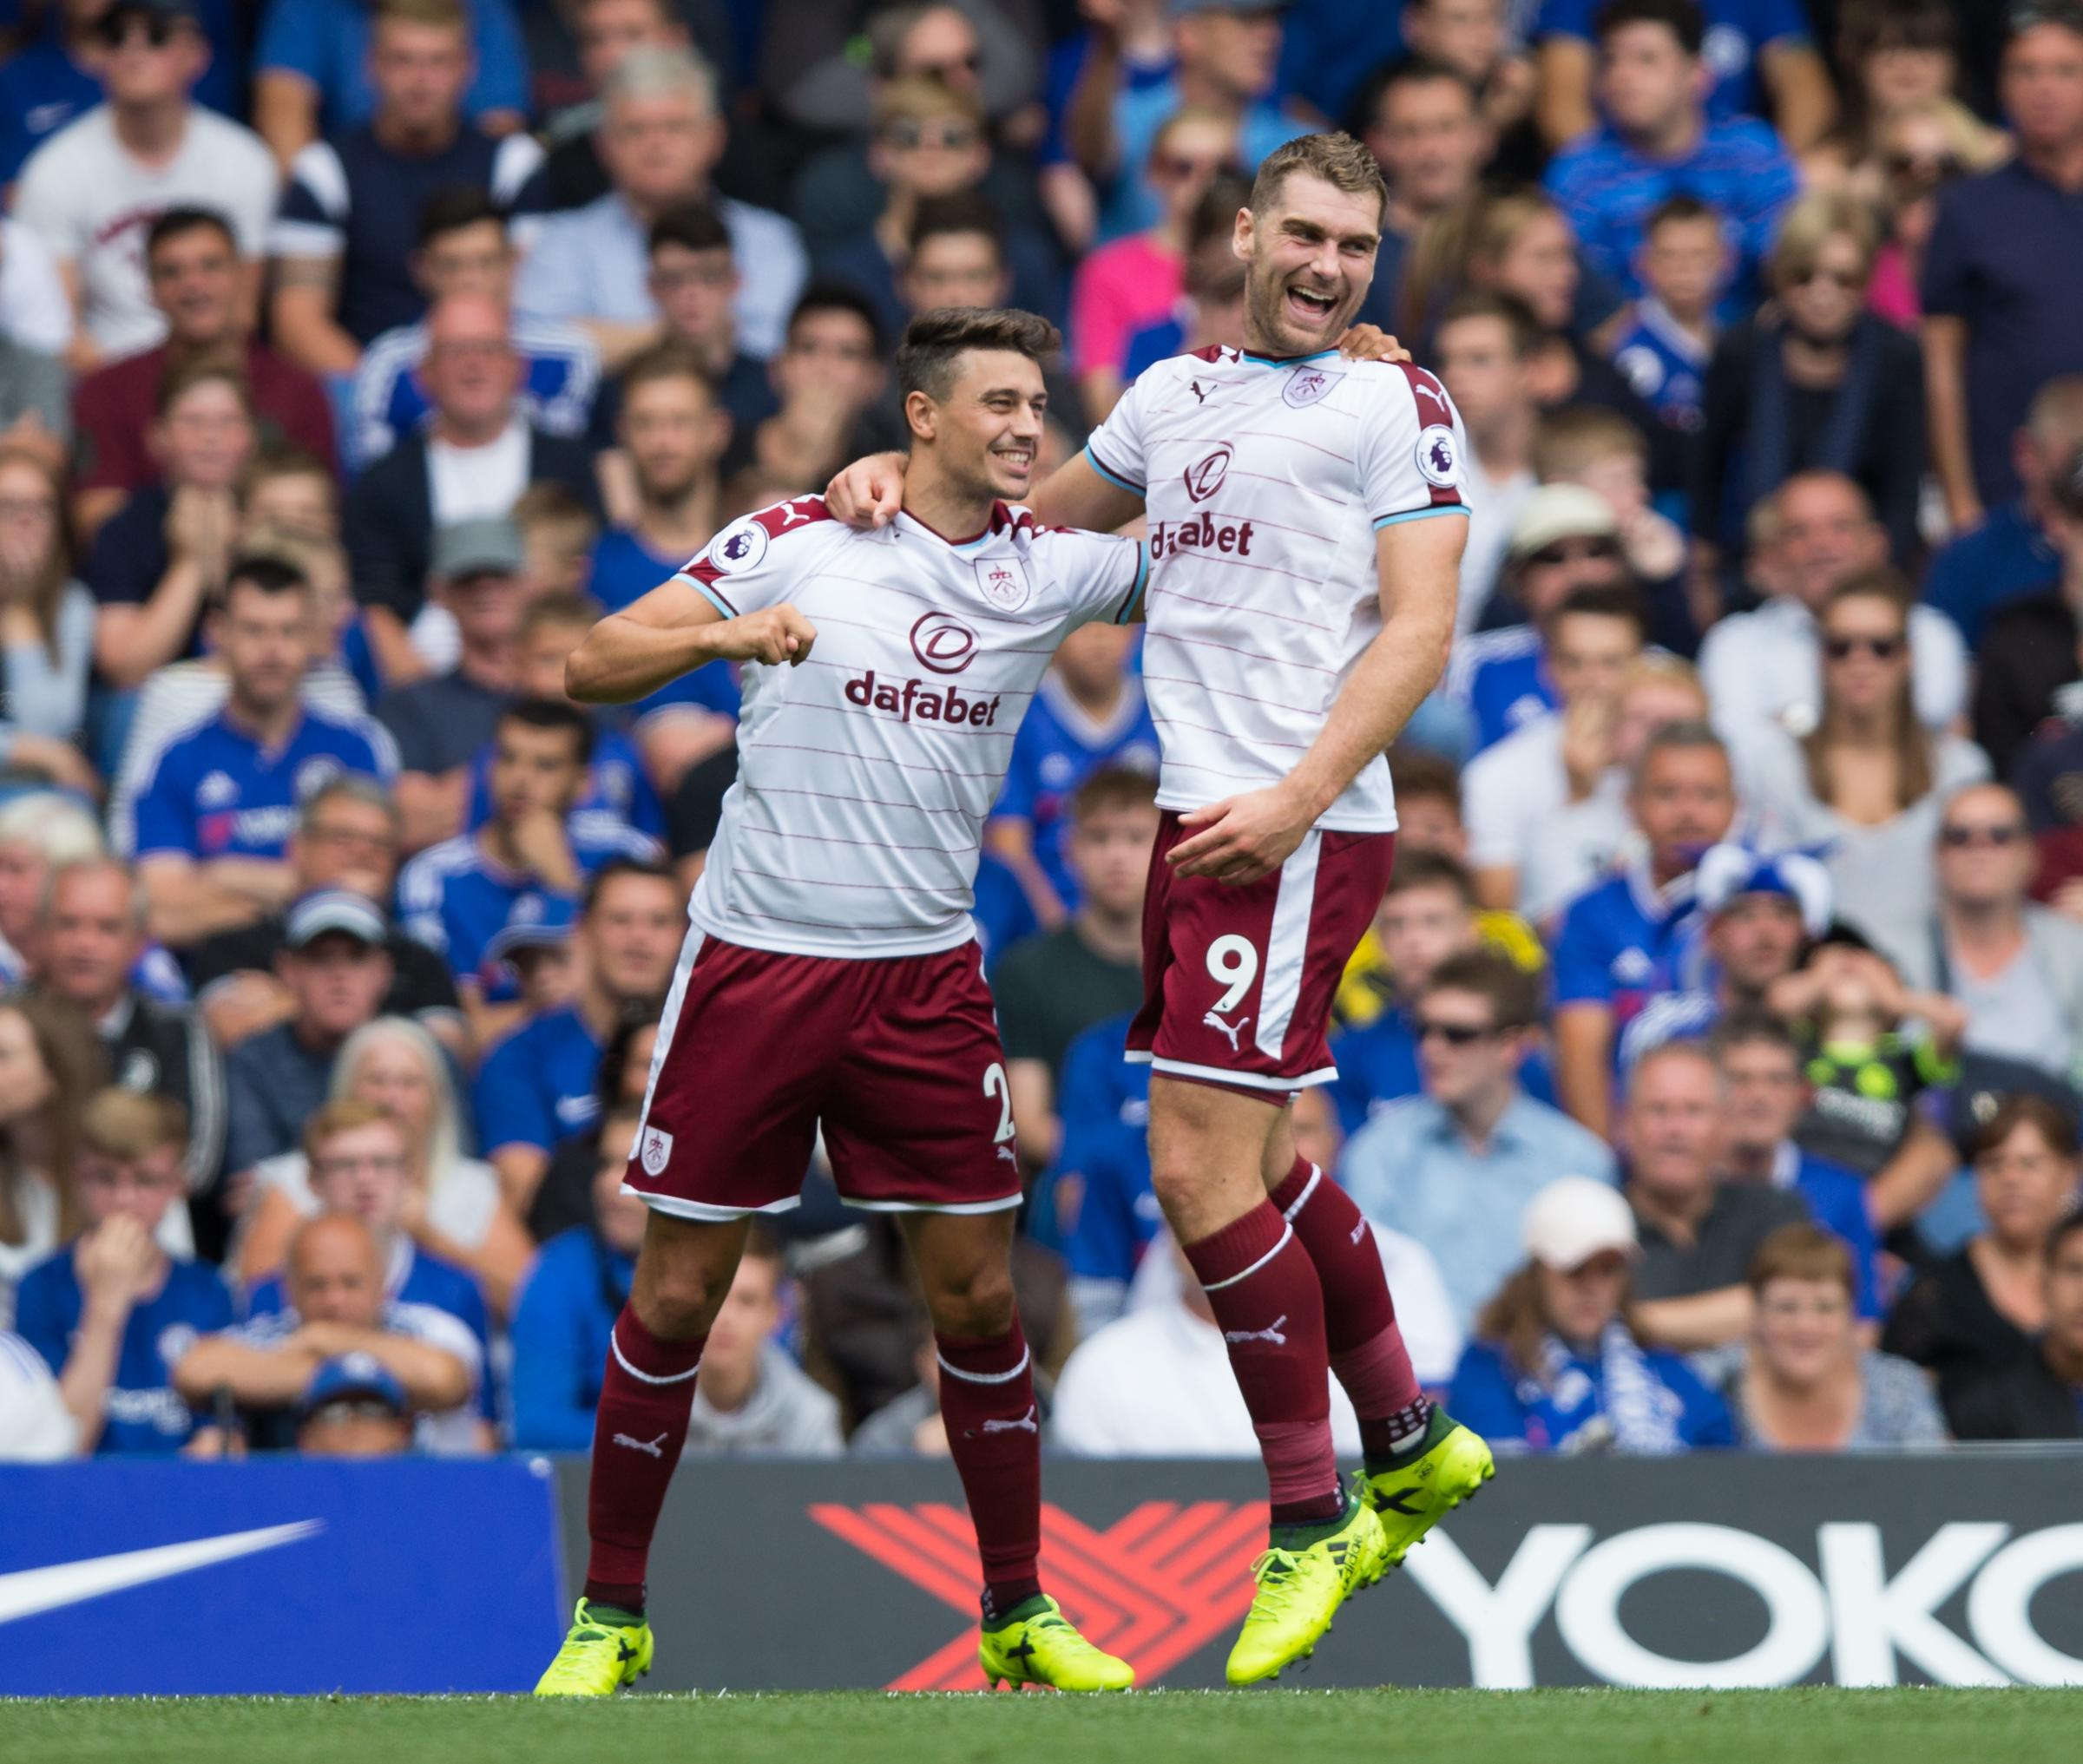 MAIN MAN: Sam Vokes, celebrating a goal at Chelsea last week with Matt Lowton, has improved his game after initiating a chat with boss Sean Dyche